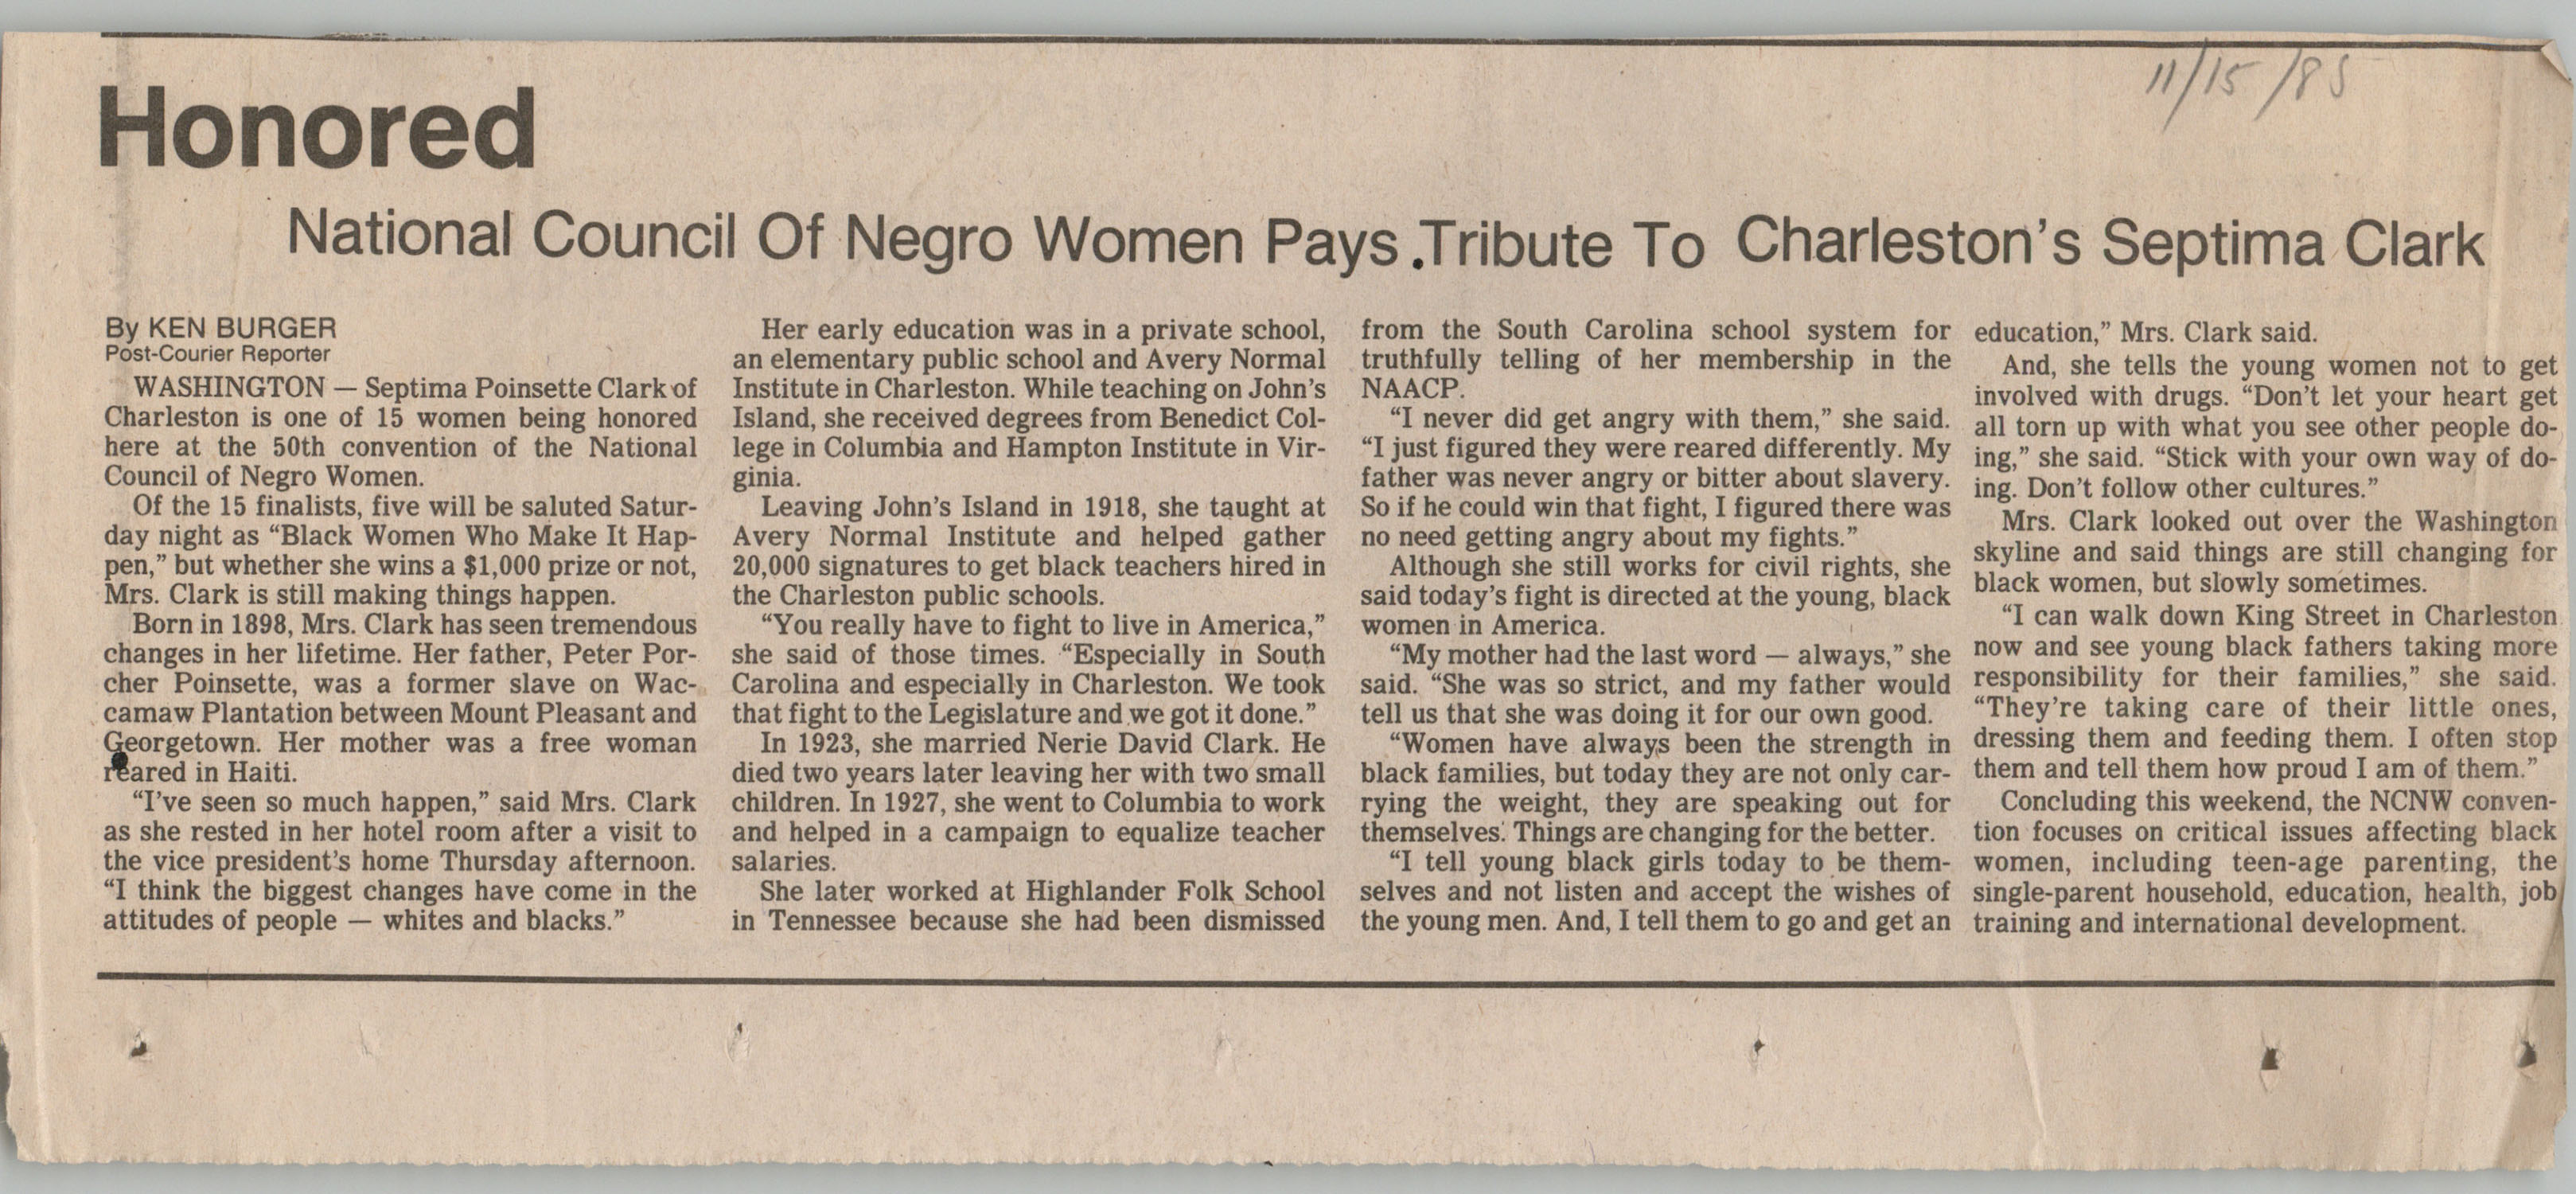 Newspaper Article, November 15, 1985